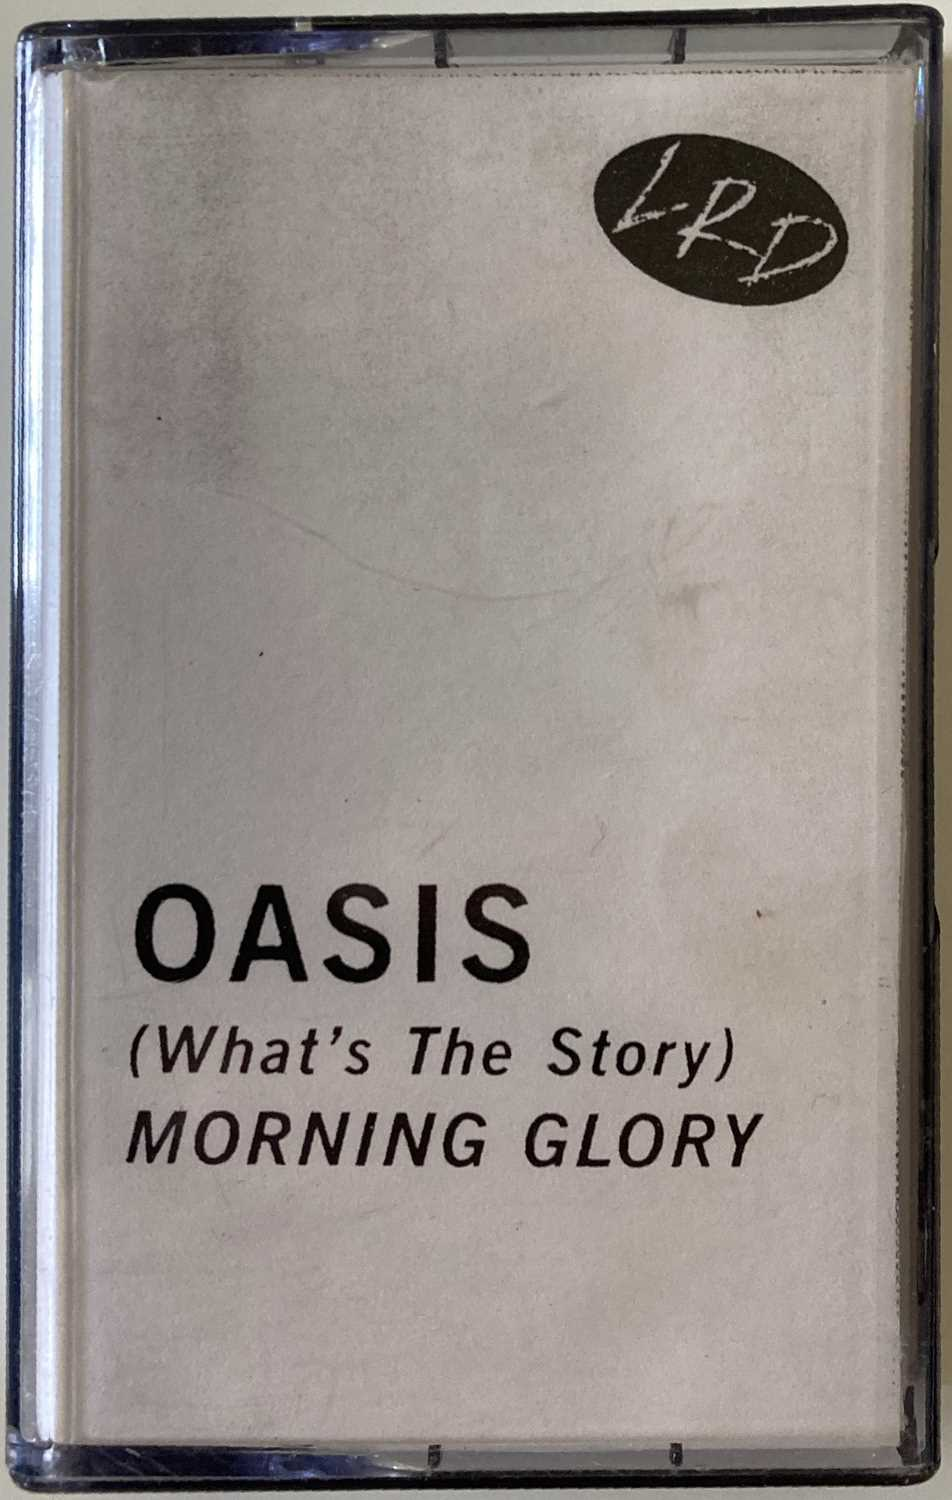 OASIS WHAT'S THE STORY 'LRD' PROMO CASSETTE.